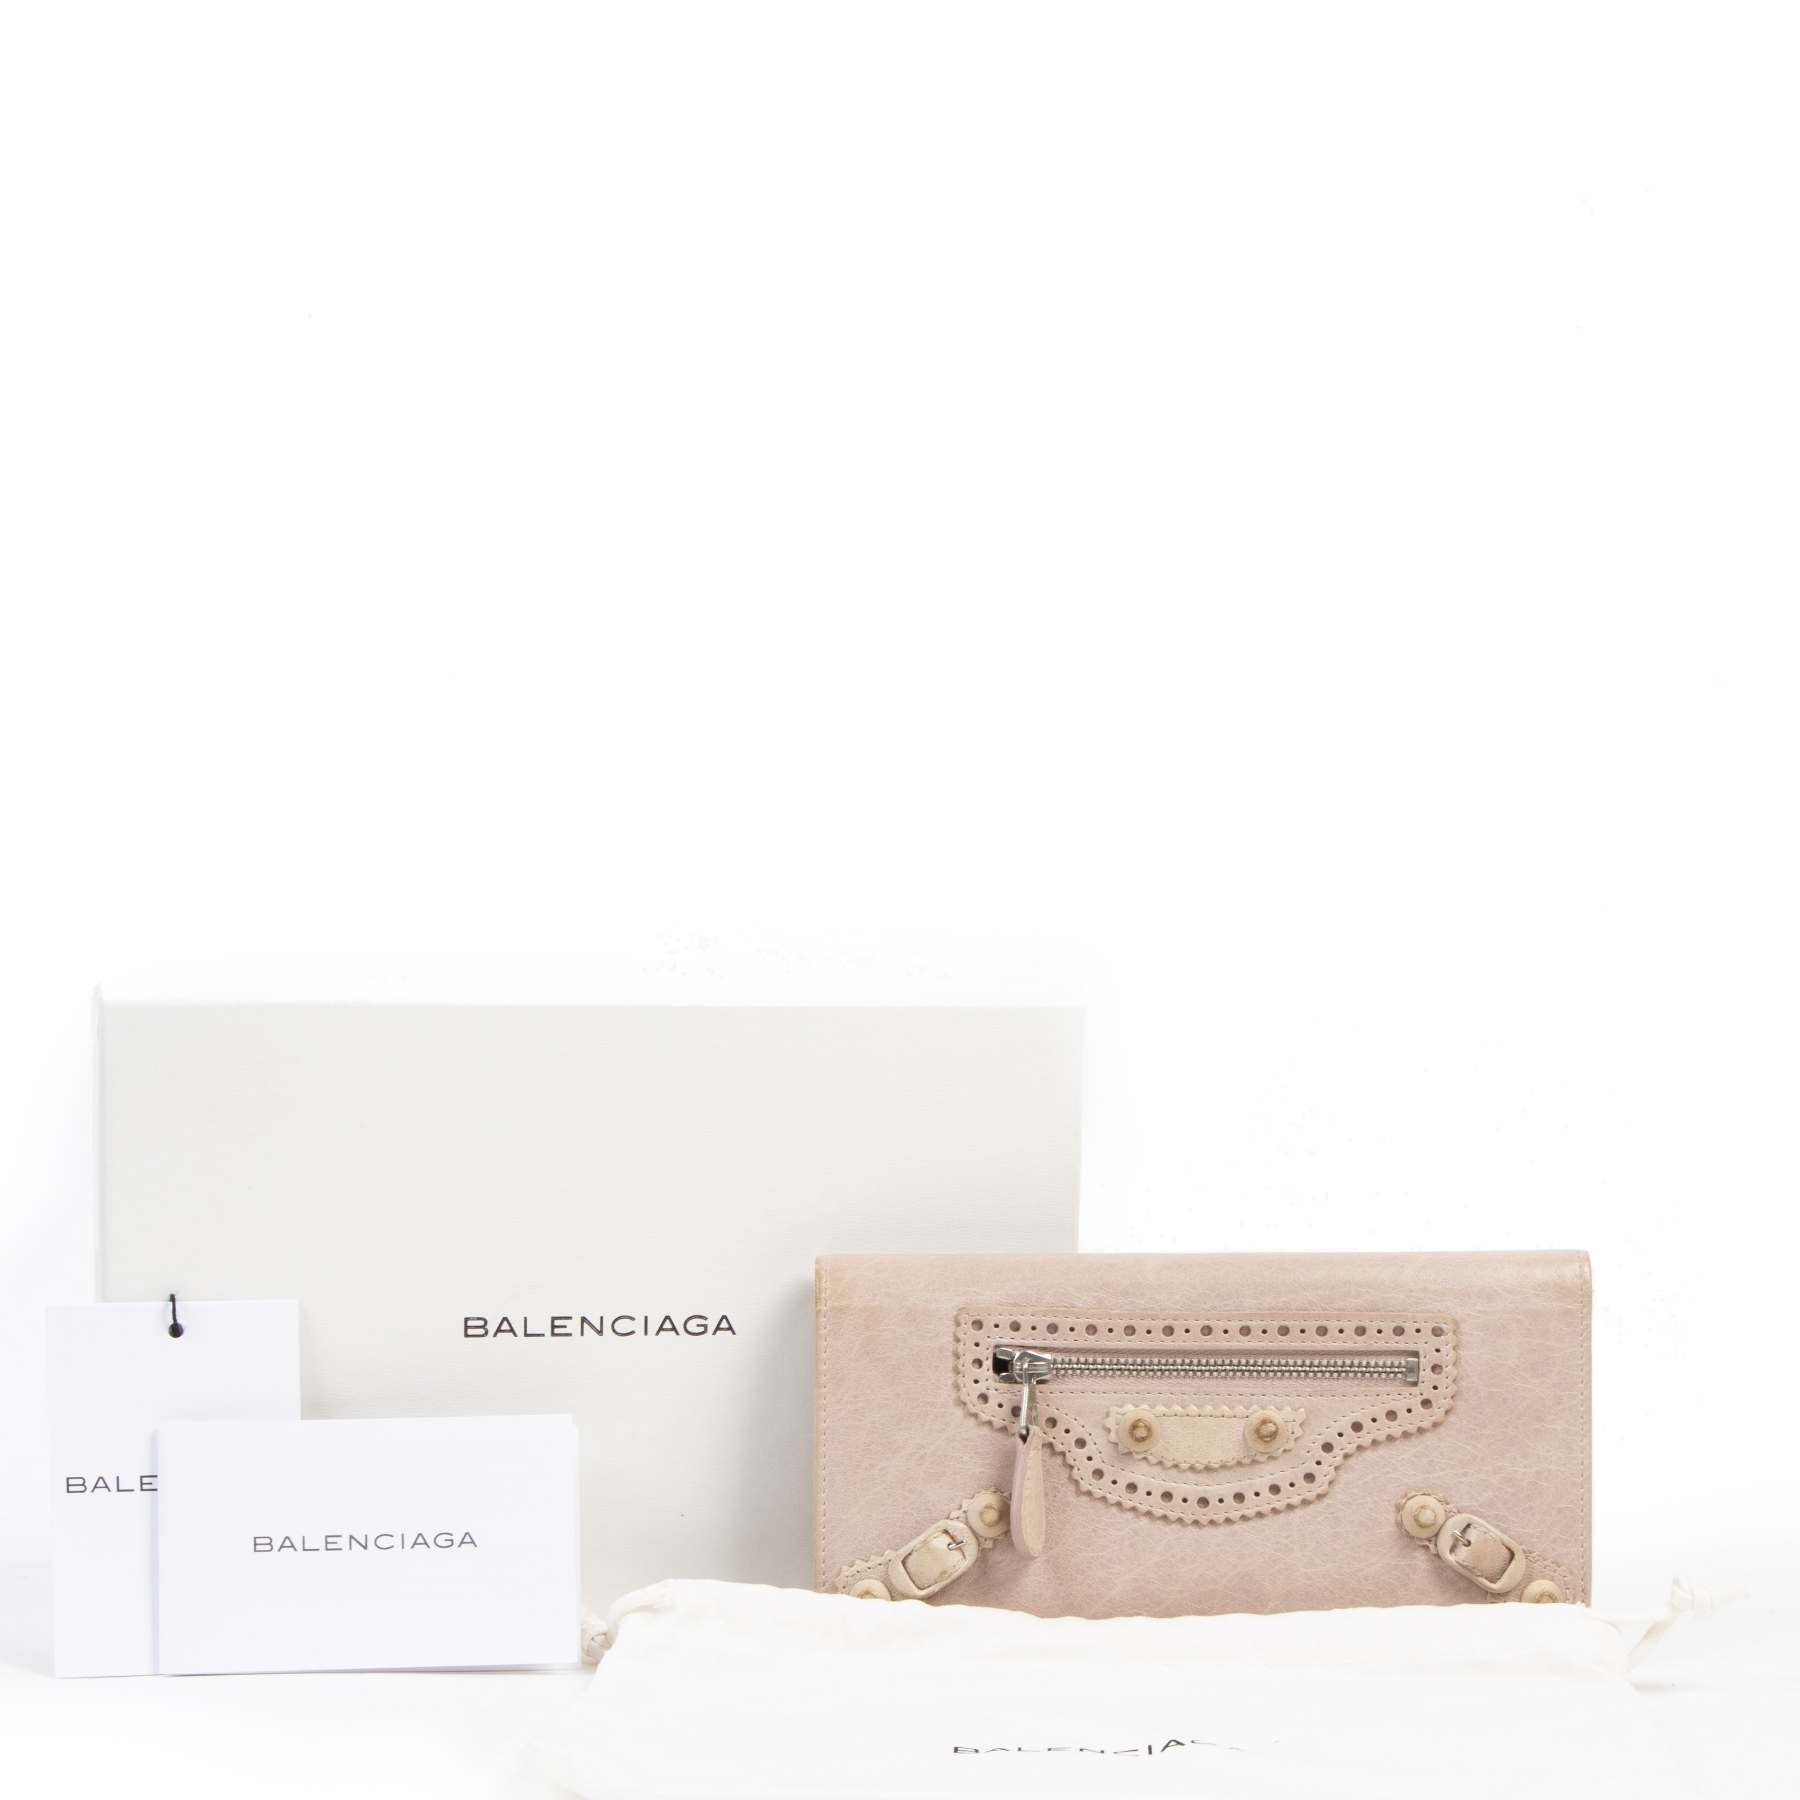 Authentieke tweedehands vintage Balenciaga Pink Leather Continental Zip Around Wallet koop online webshop LabelLOV